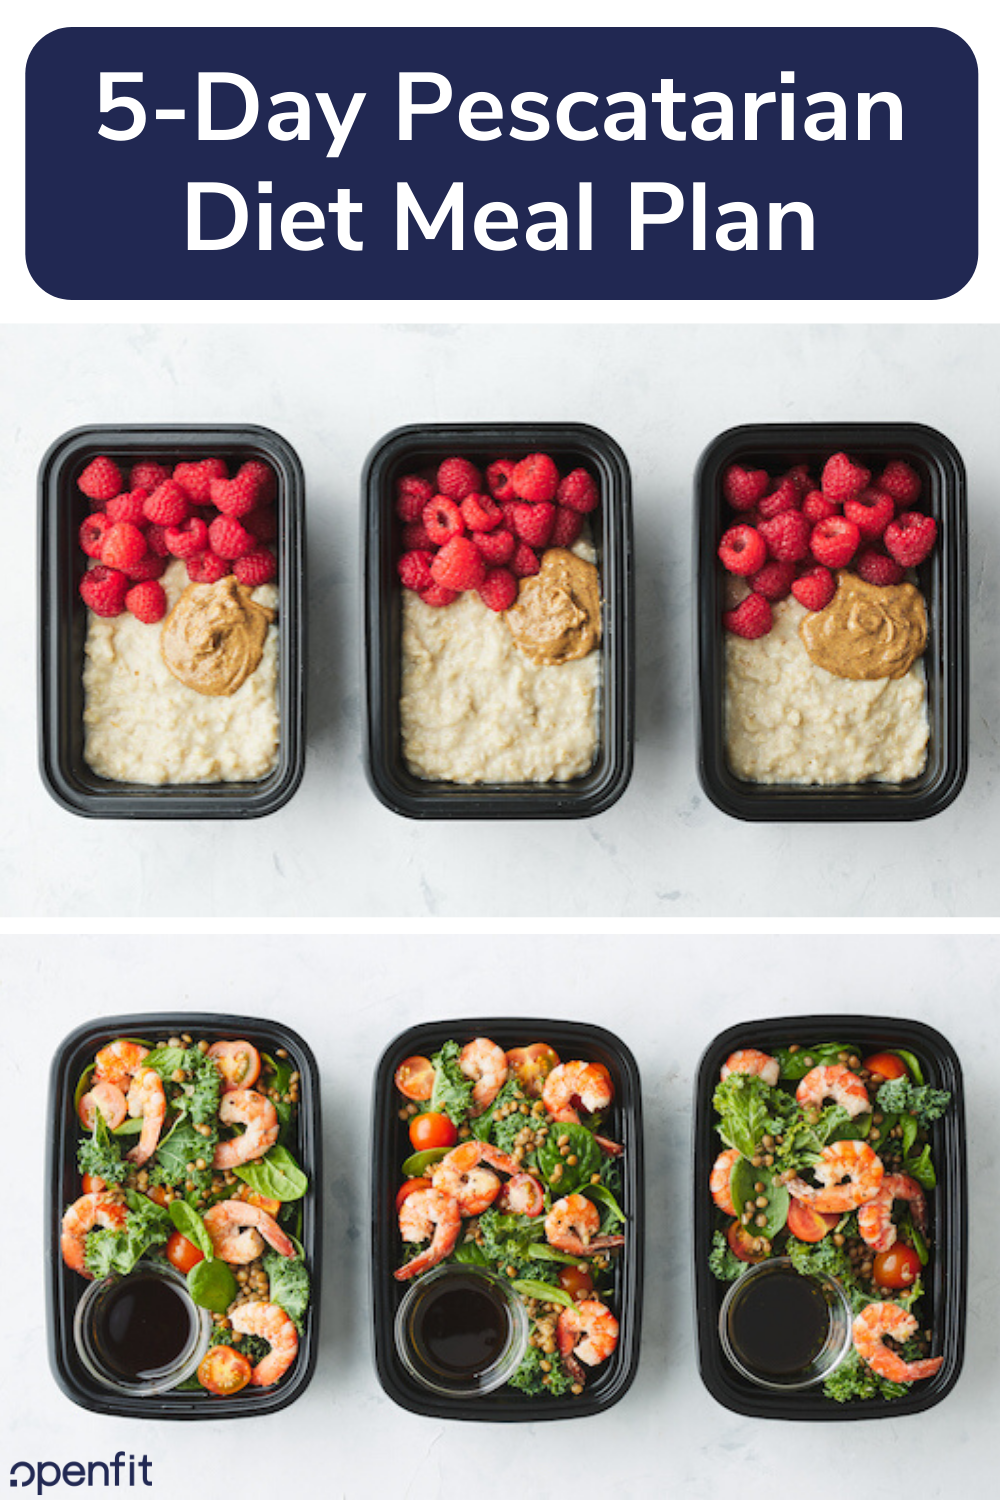 5 Day Pescatarian Meal Prep — Recipes Included | Openfit